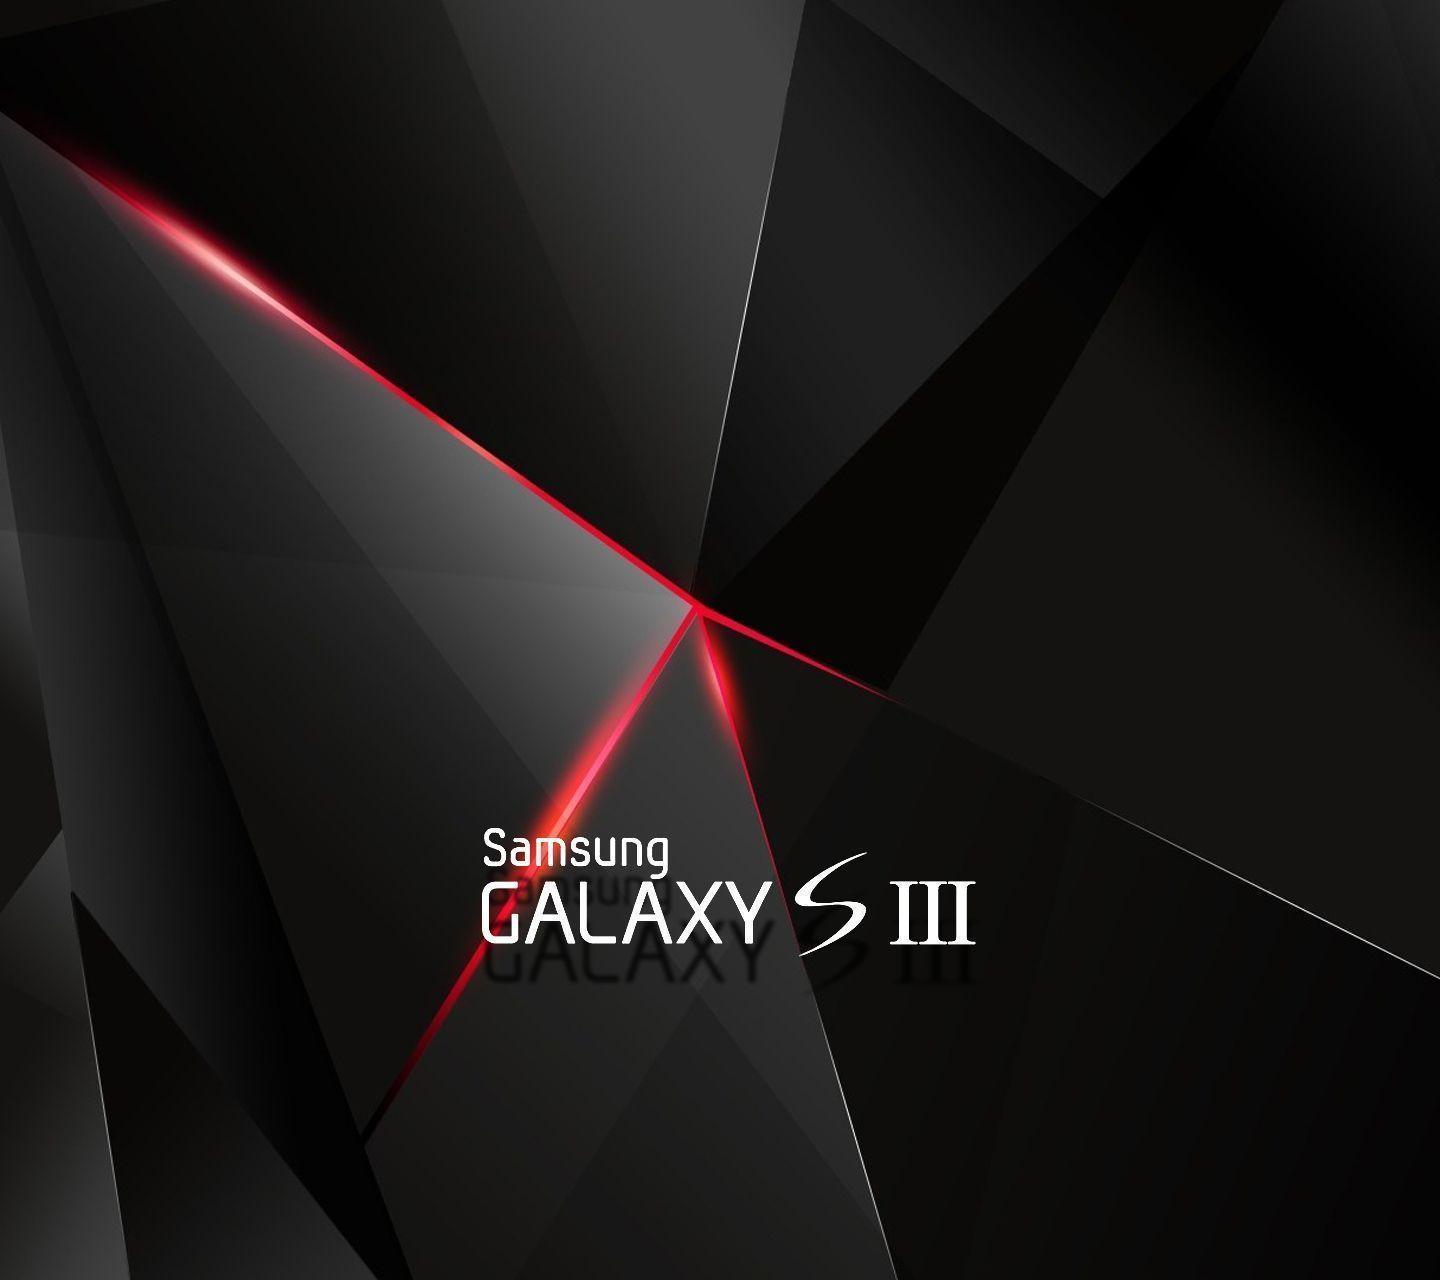 high definition wallpapers for samsung galaxy s3 - wallpaper cave